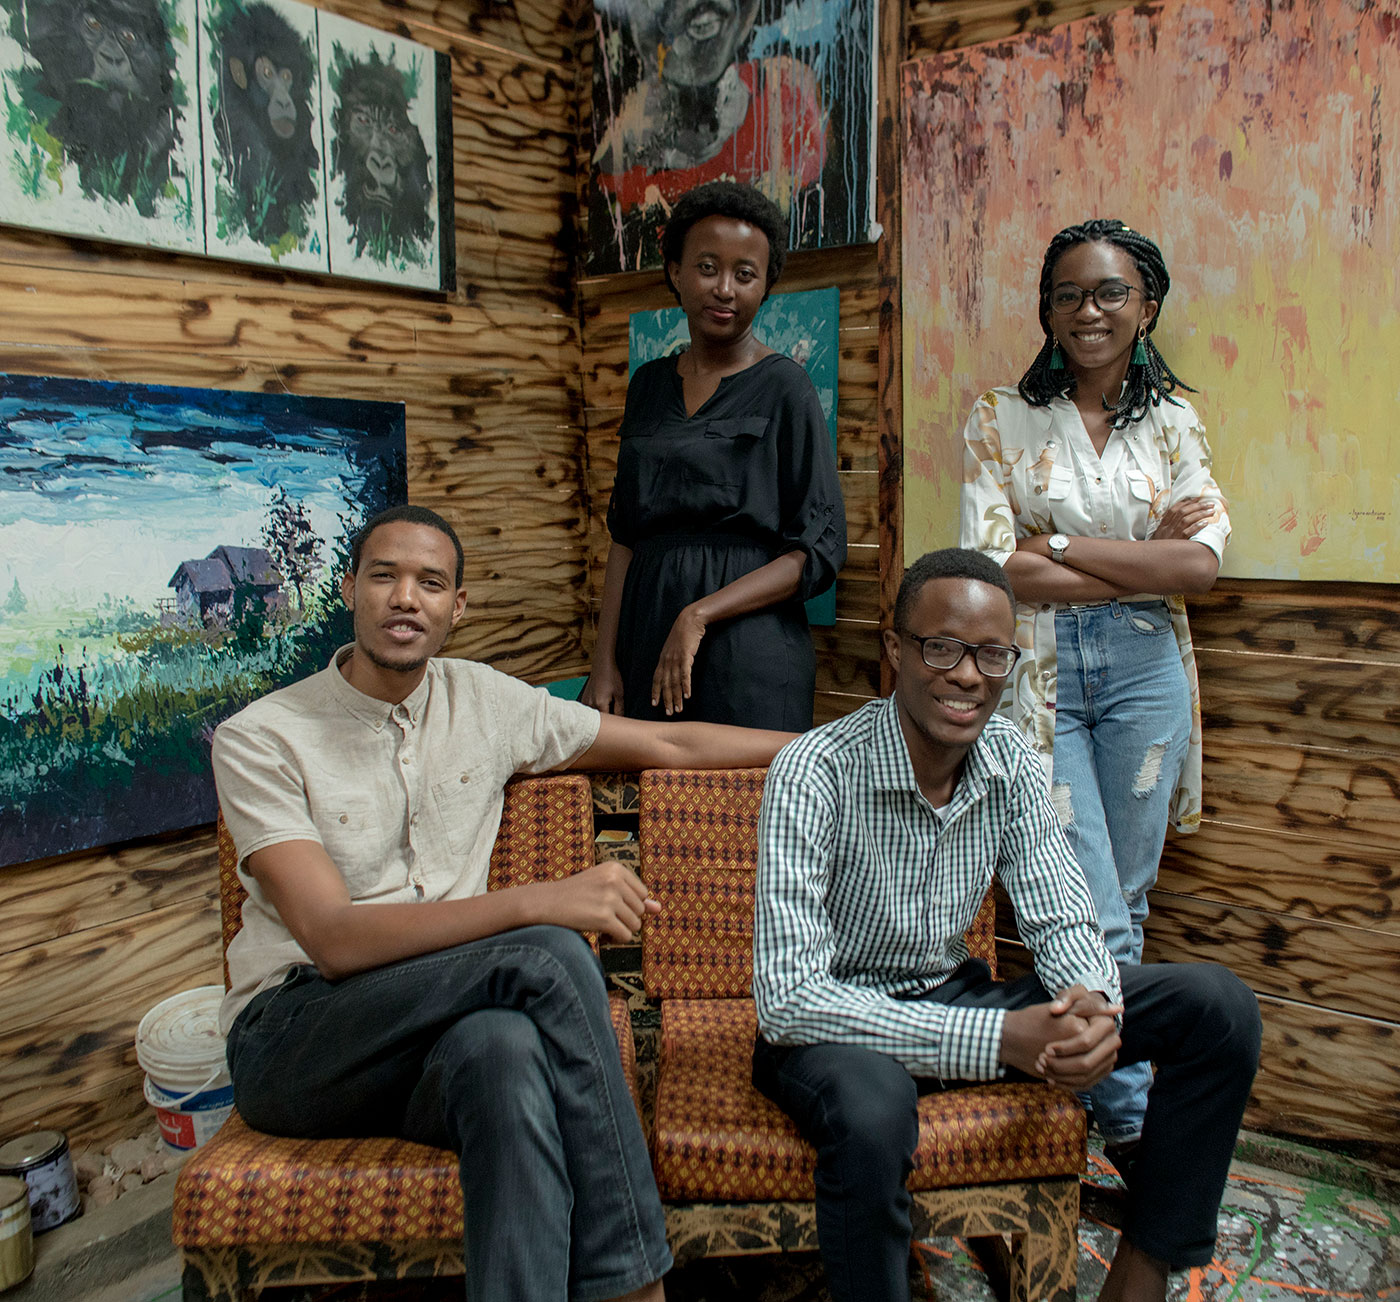 Dominique (top right) and part of her Imagine We Team (clockwise): Aaron Migaywa, Mico Jamal and Lina Ishimwe.